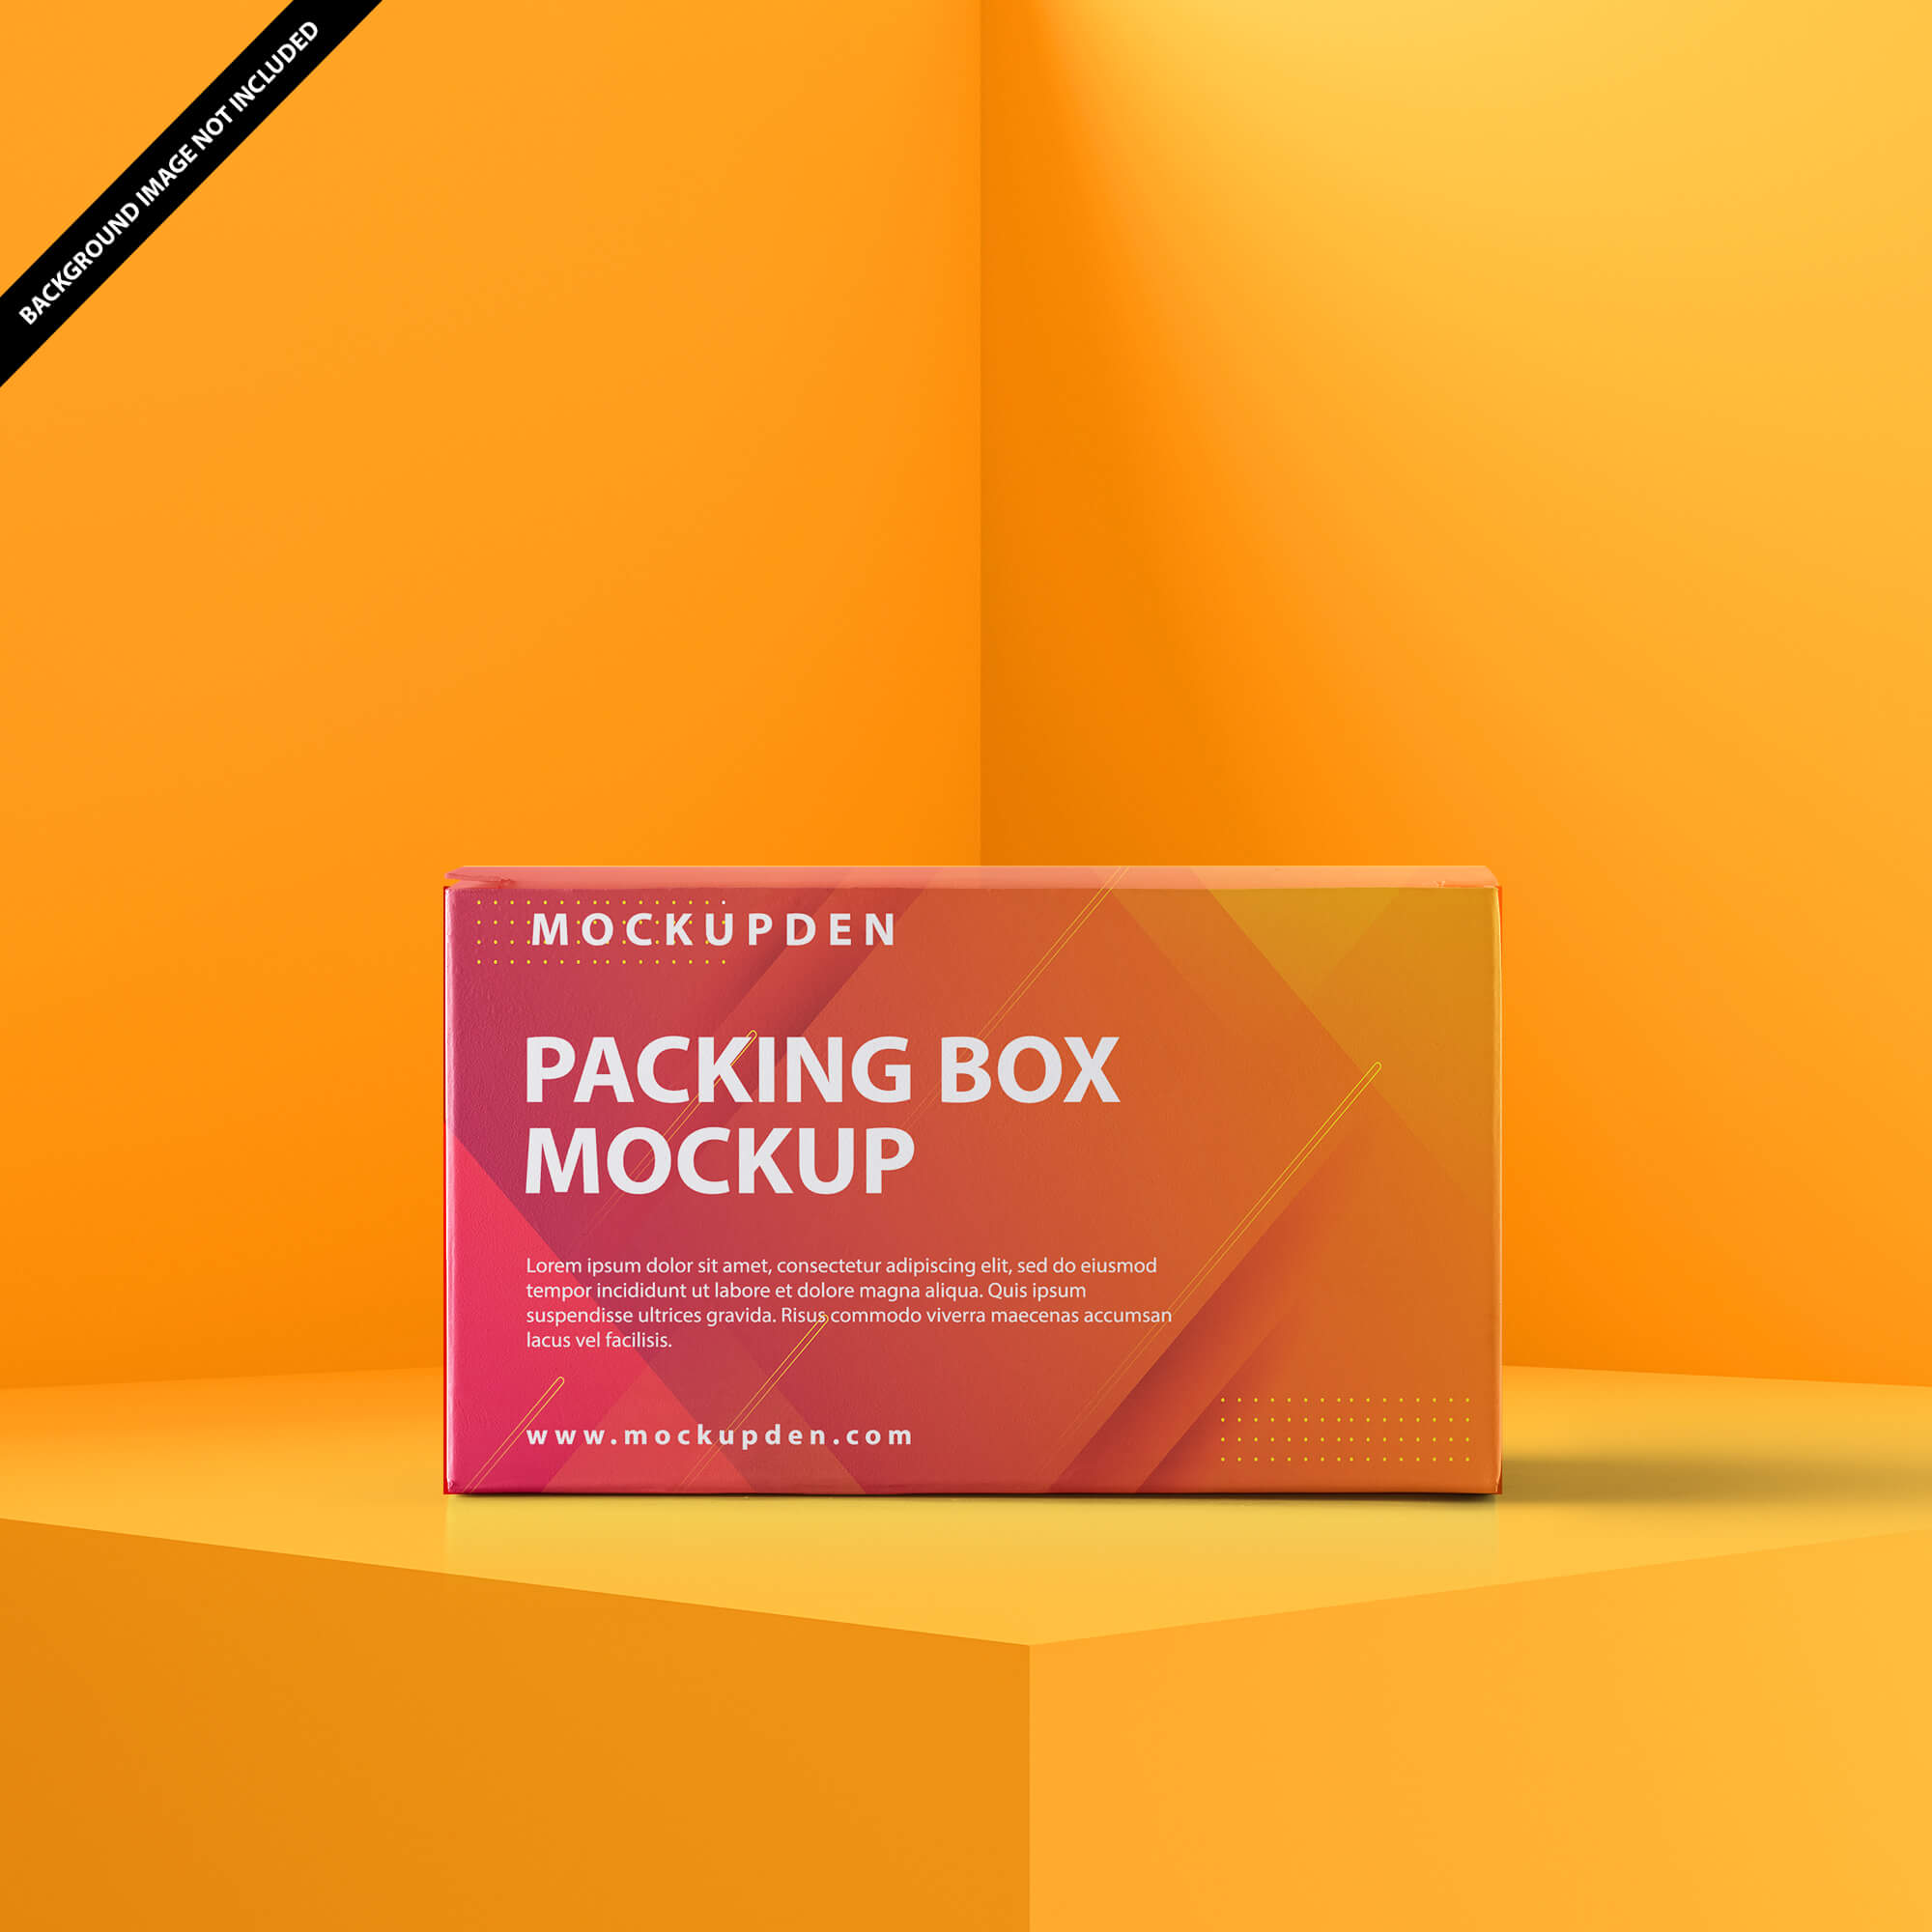 Free Packing Box Mockup PSD Template